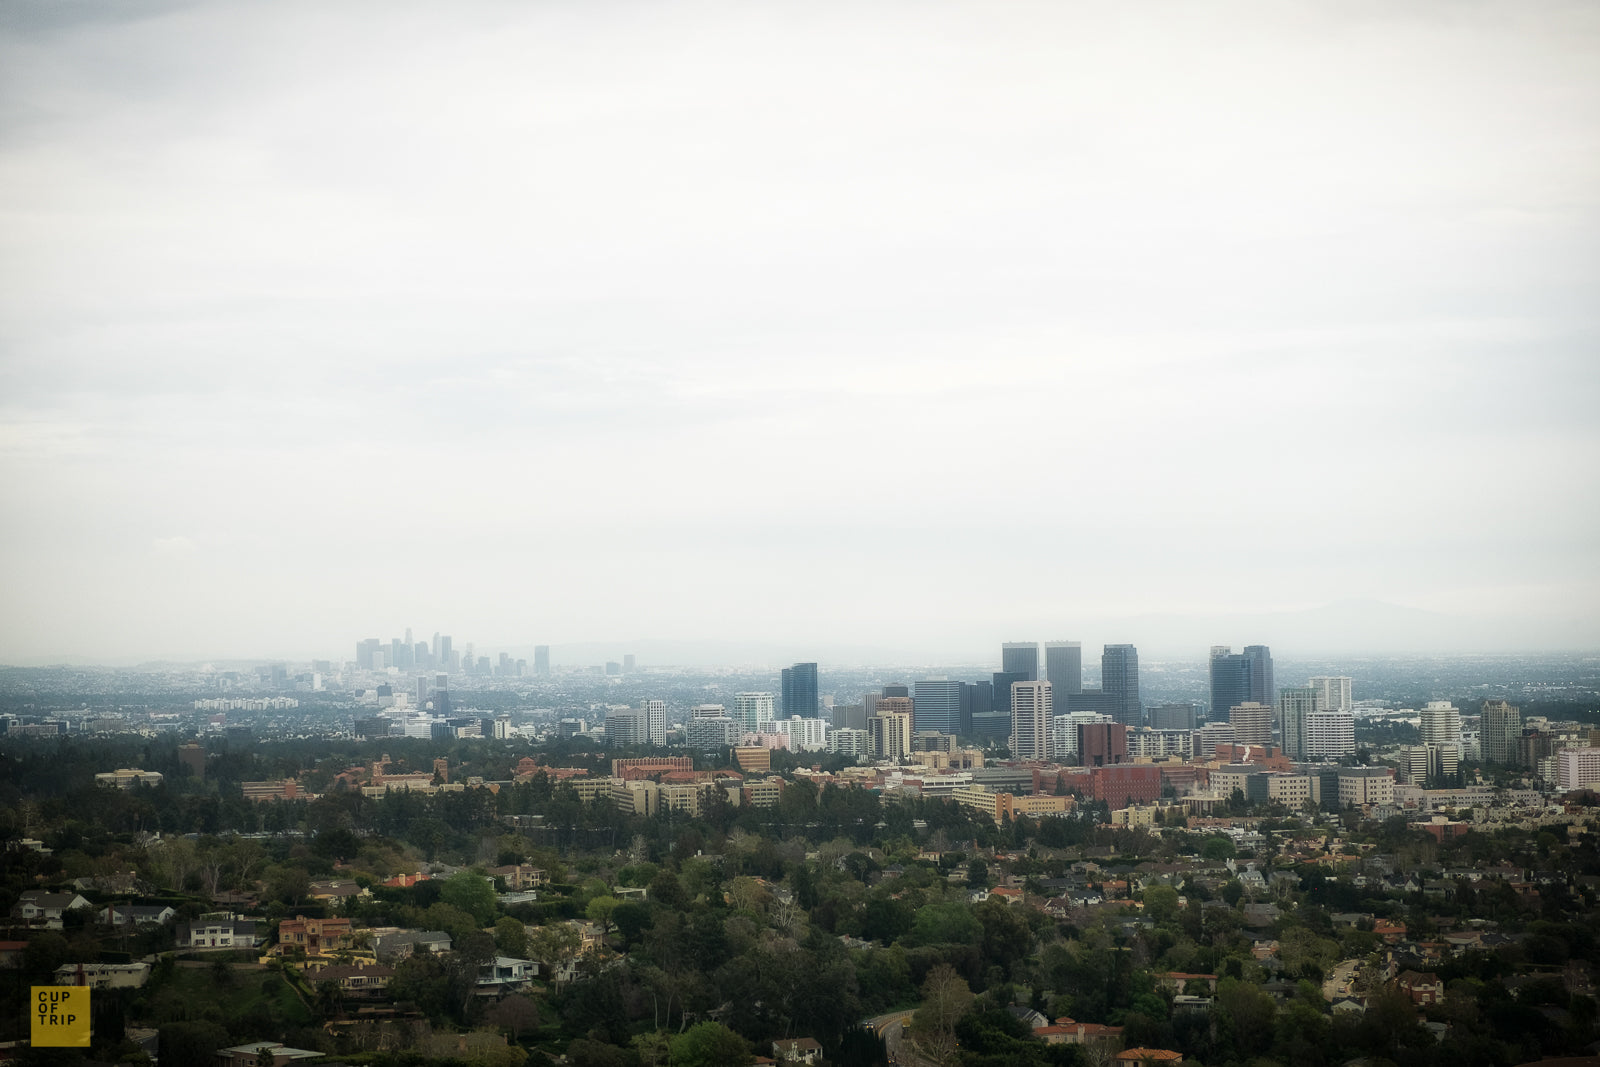 A View of Downtown LA, California